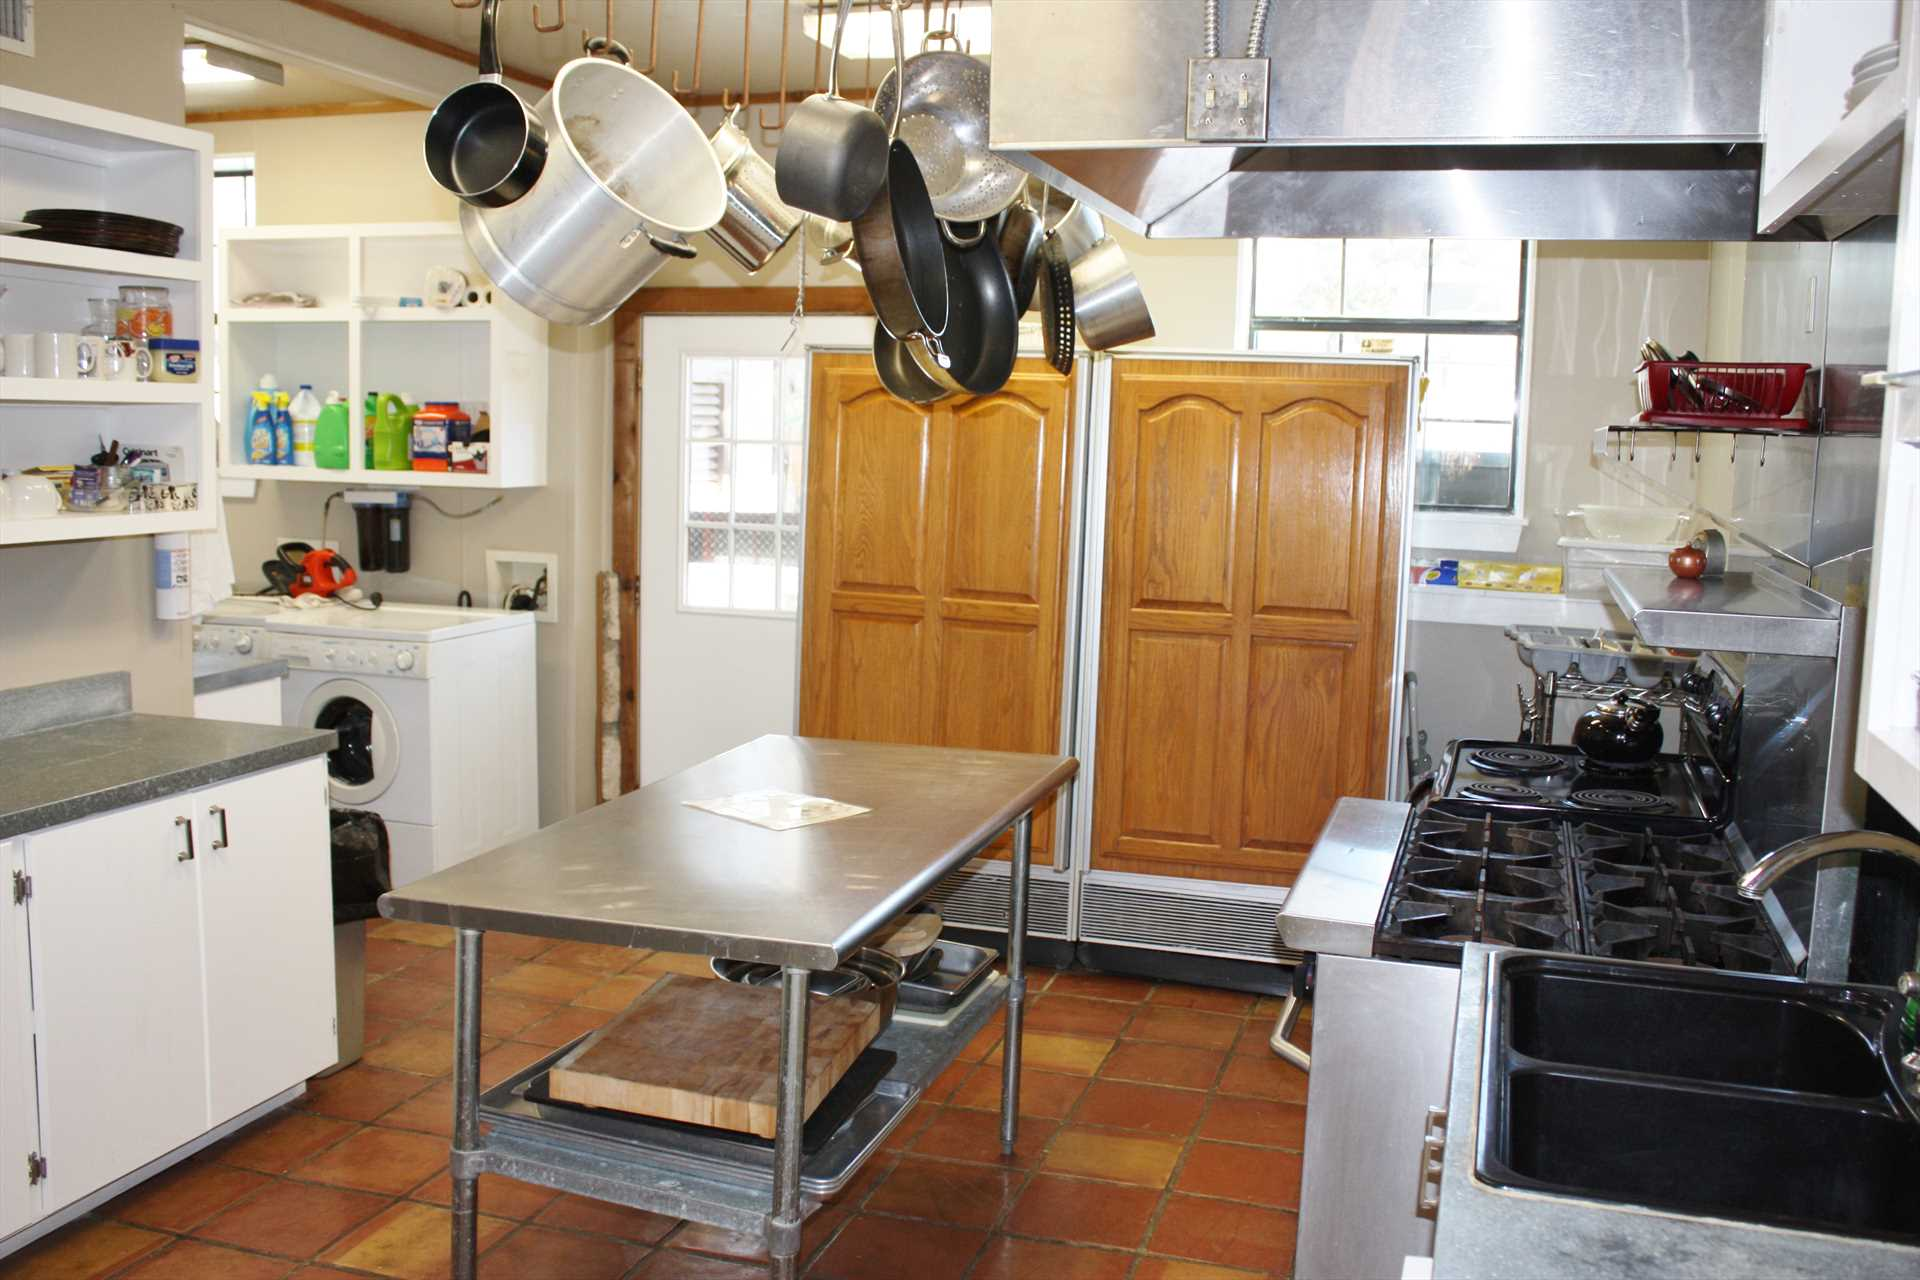 No bumping into one another here! The huge chef's kitchen has room, appliances, and cookware for even the most discriminating of cooks.